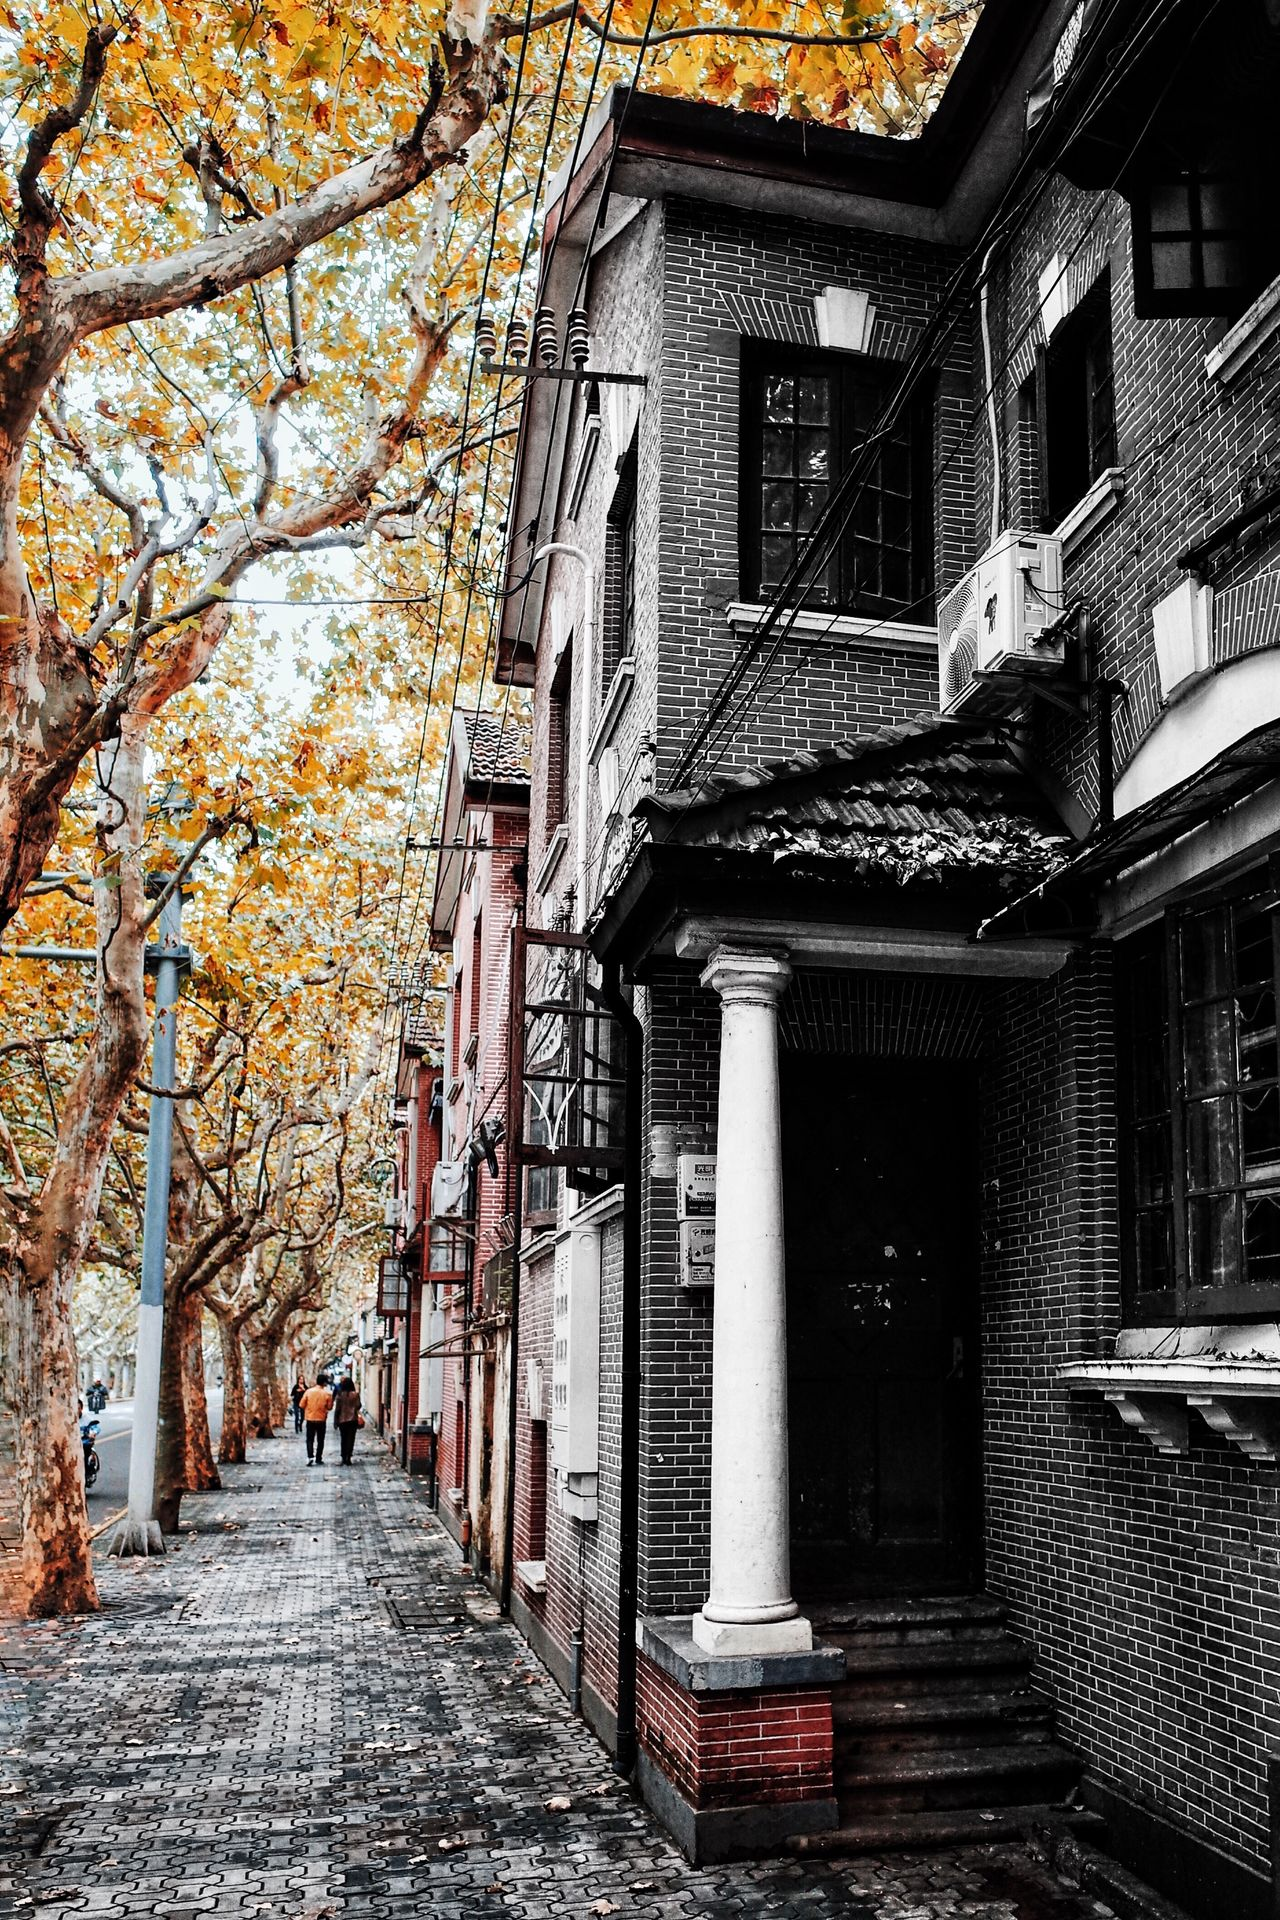 Autumn street My Street Photography From My Point Of View Shanghai Shanghai Streets Shanghai Photography Taking Photos Architecture Building Exterior Tree Autumn Trees Shanghai Autumn The Way Forward